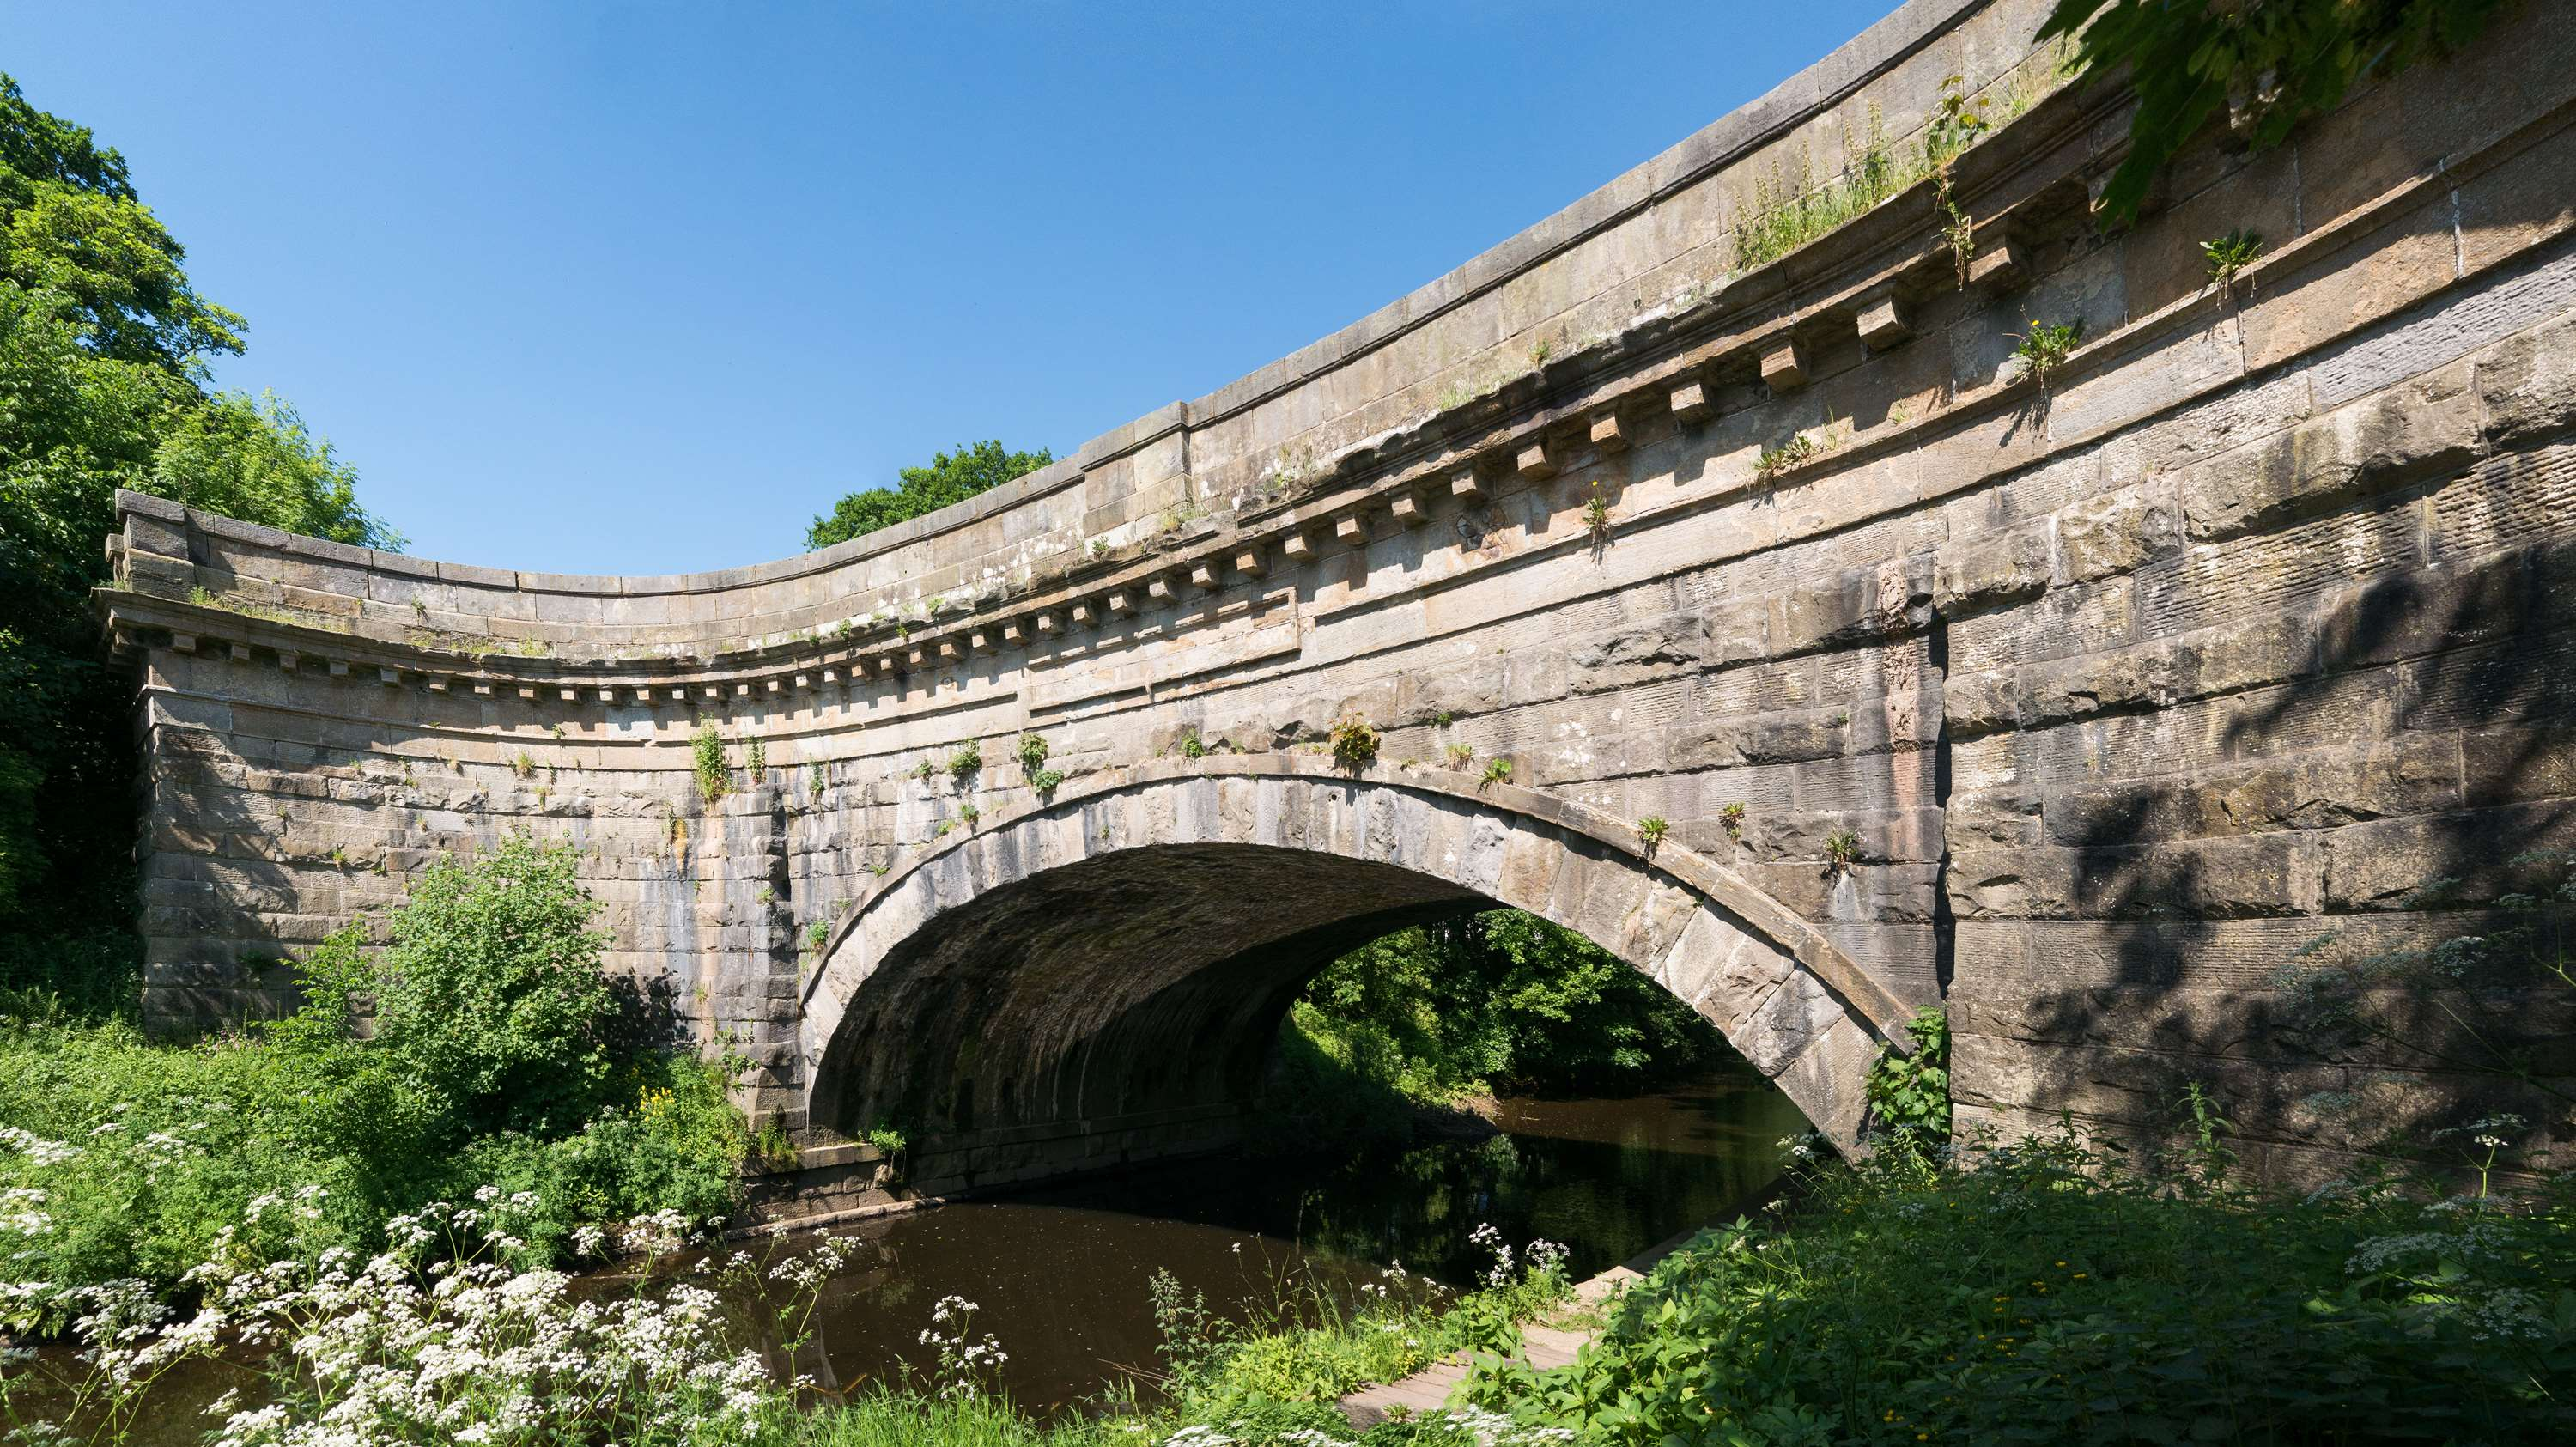 John Rennie's aqueduct over the River Wyre at Garstang